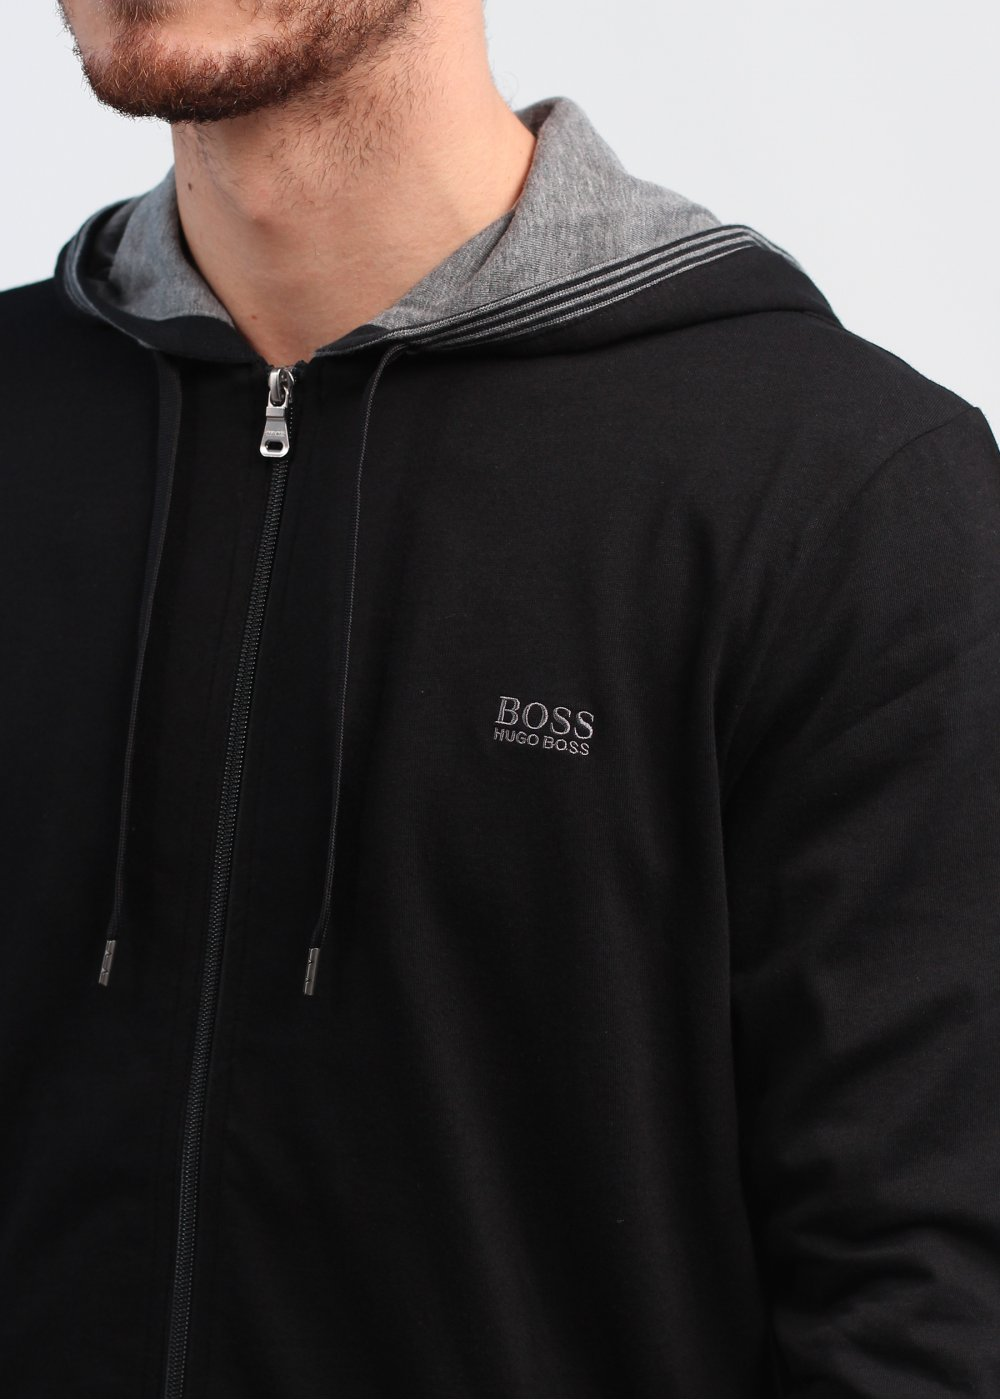 Hugo Boss Black Hooded Jacket